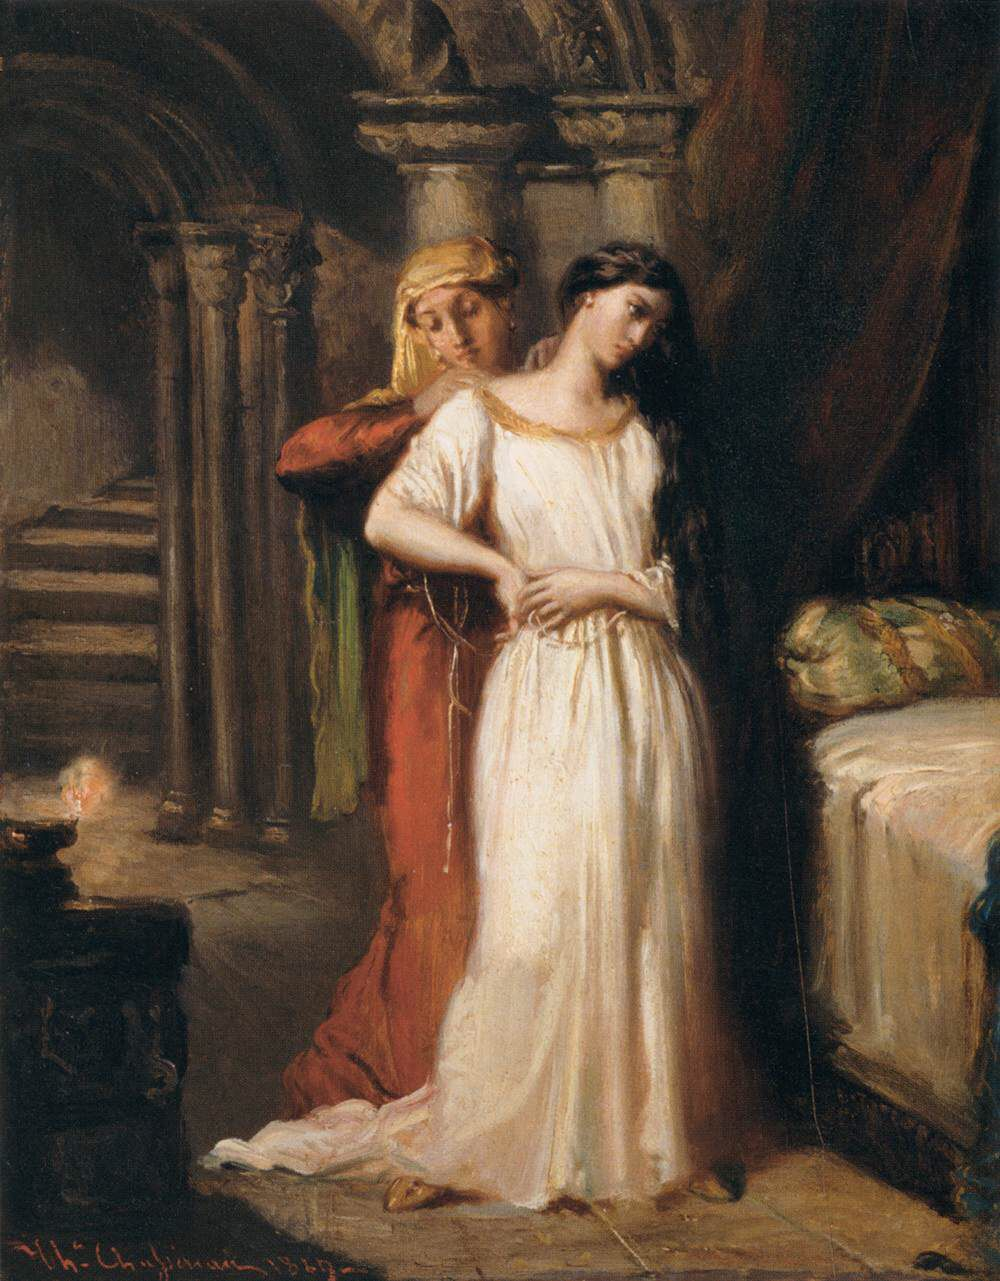 othello emilia desdemona relationship As the handkerchief, the 'ocular proof' (33360) of infidelity, passes from othello to desdemona to emilia to iago to cassio to the courtesan bianca, it links the three couples together to highlight what they have in common.